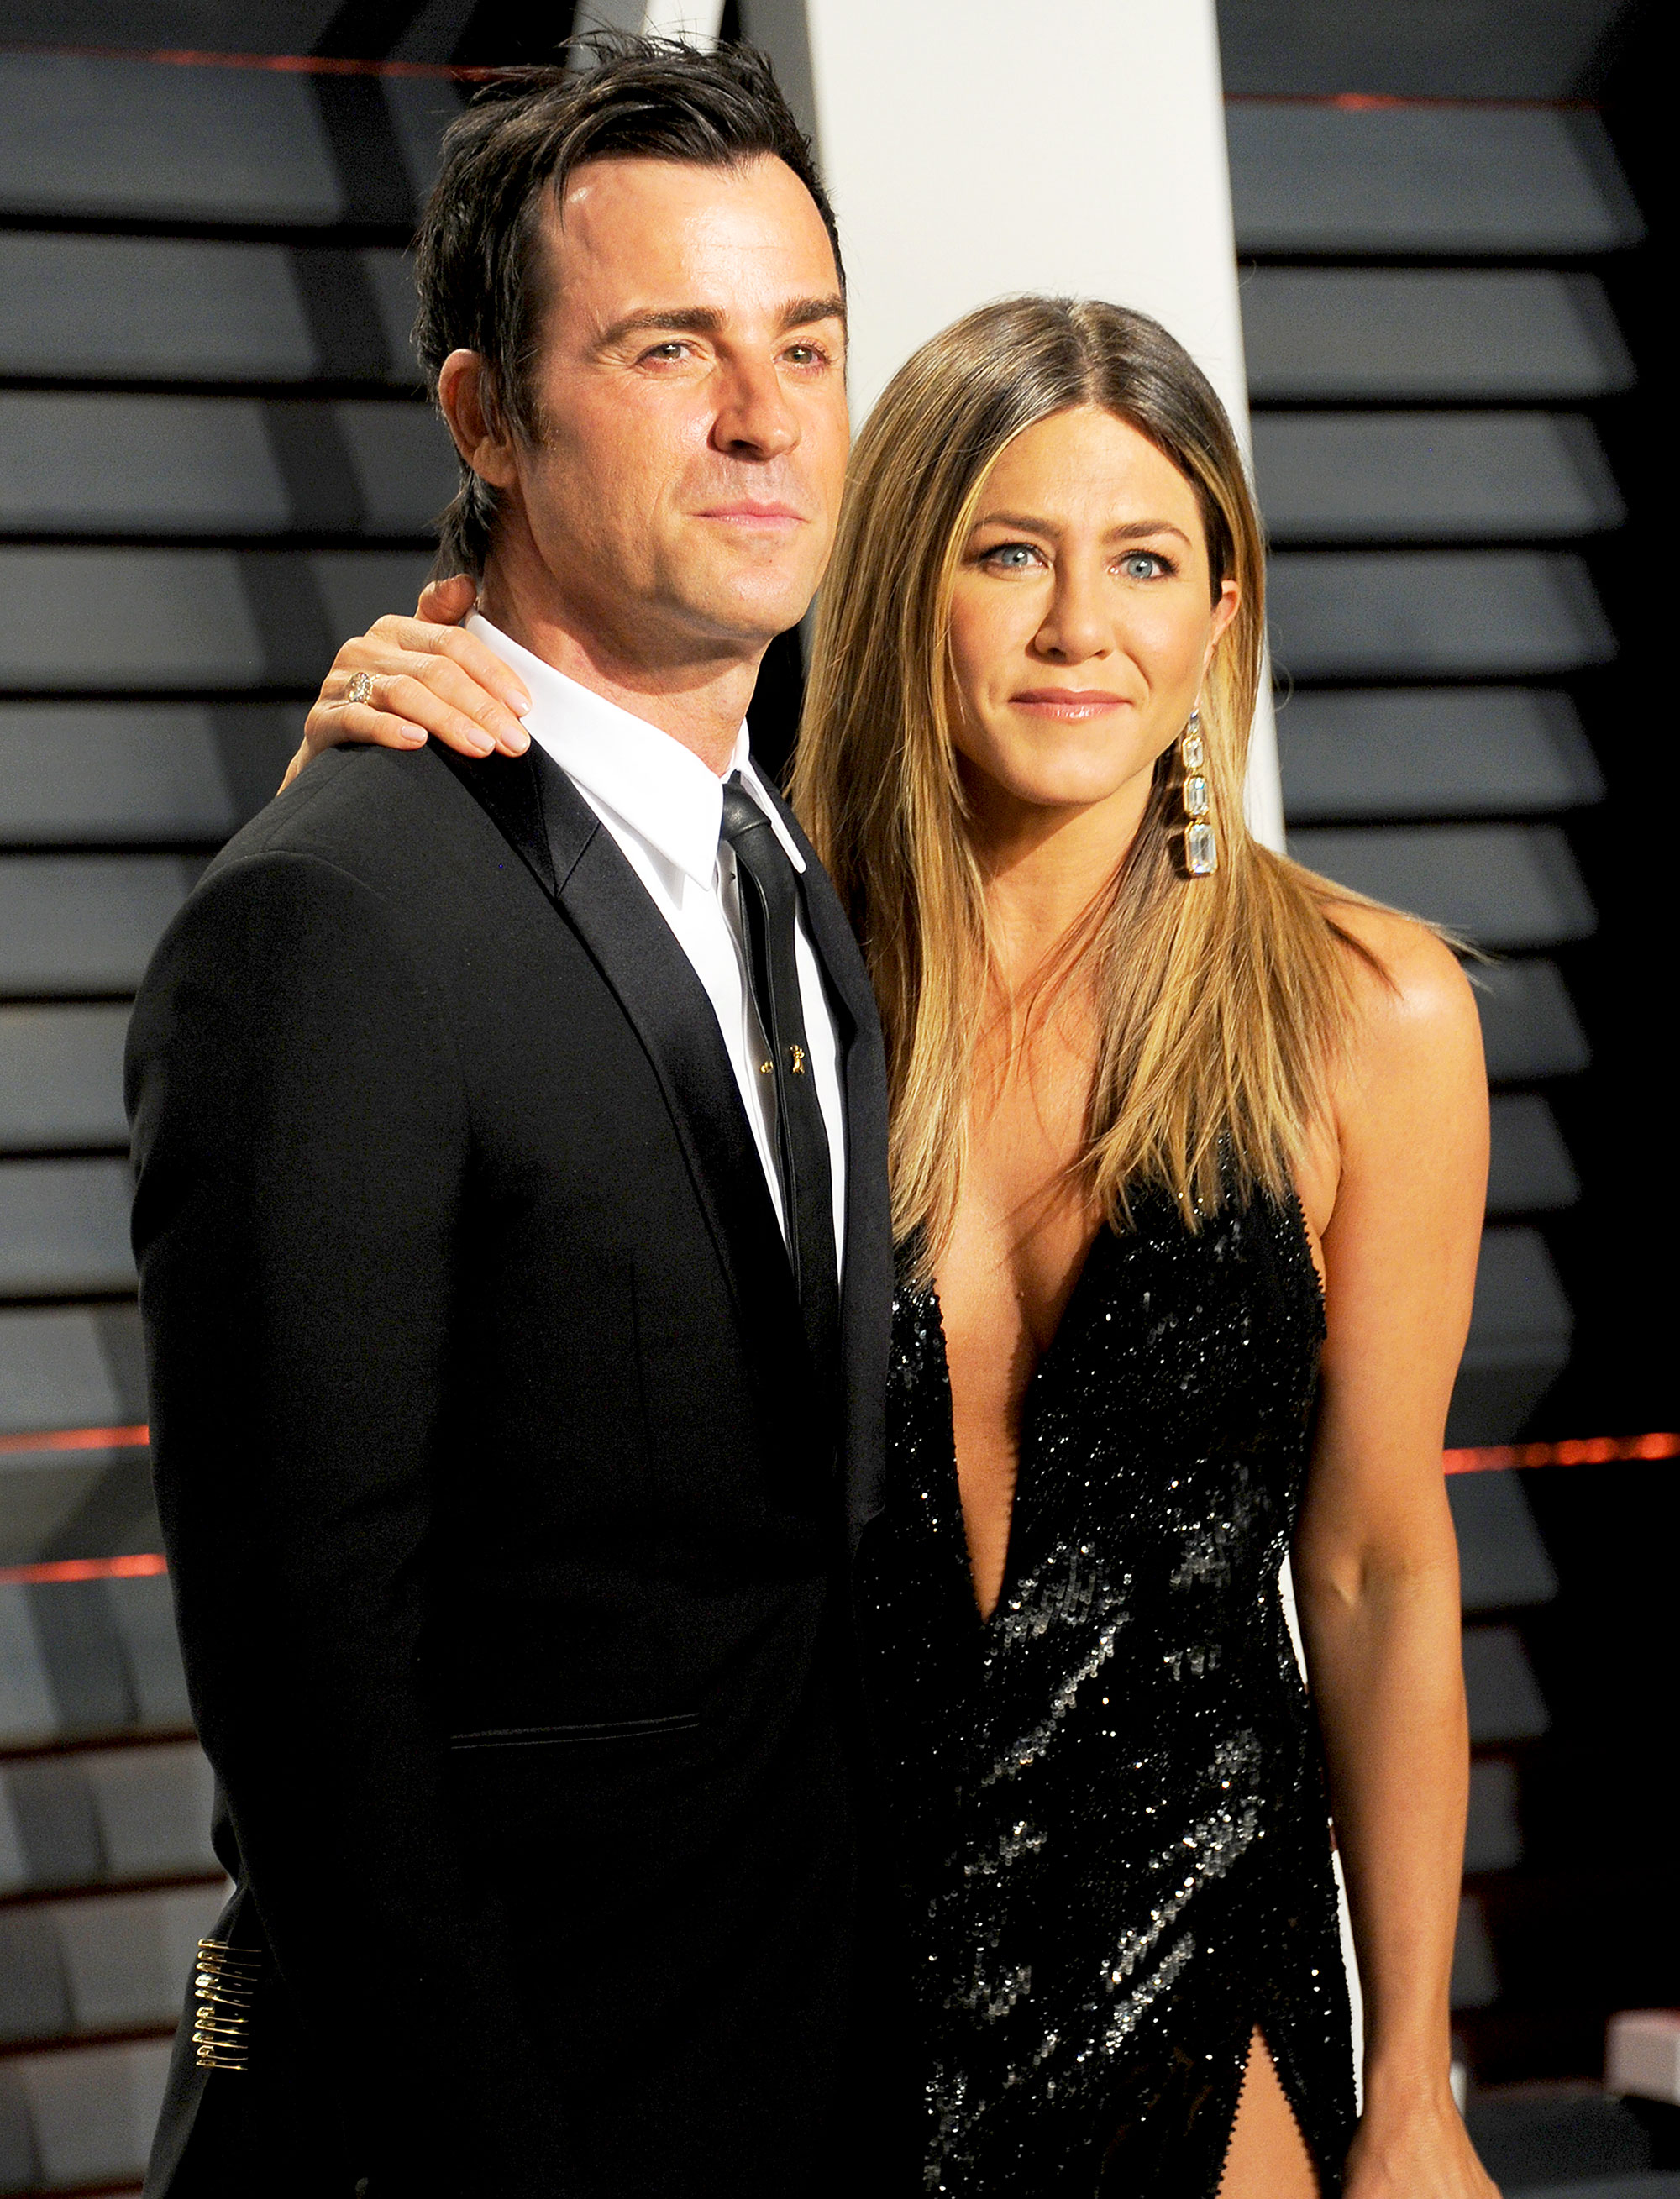 Jennifer Aniston and Justin Theroux arrive at Vanity Fair's Oscar party at Wallis Annenberg Center for the Performing Arts in Beverly Hills on February 26, 2017.